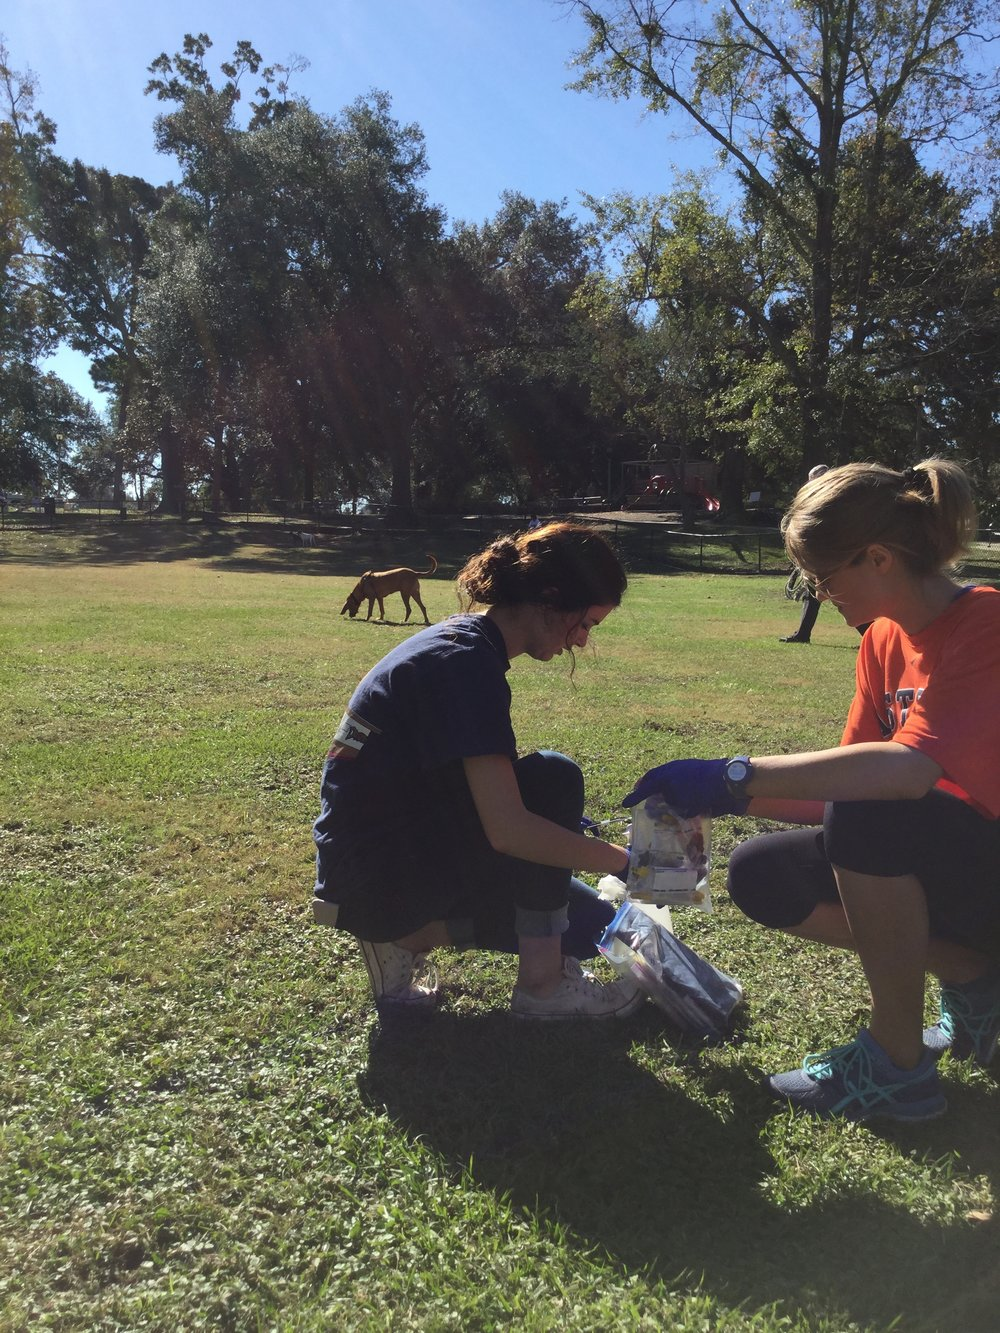 Microbiology students collect fecal samples from Cane's dog park. What kinds of microbes are living in our dogs' guts? Photo by Gary King.